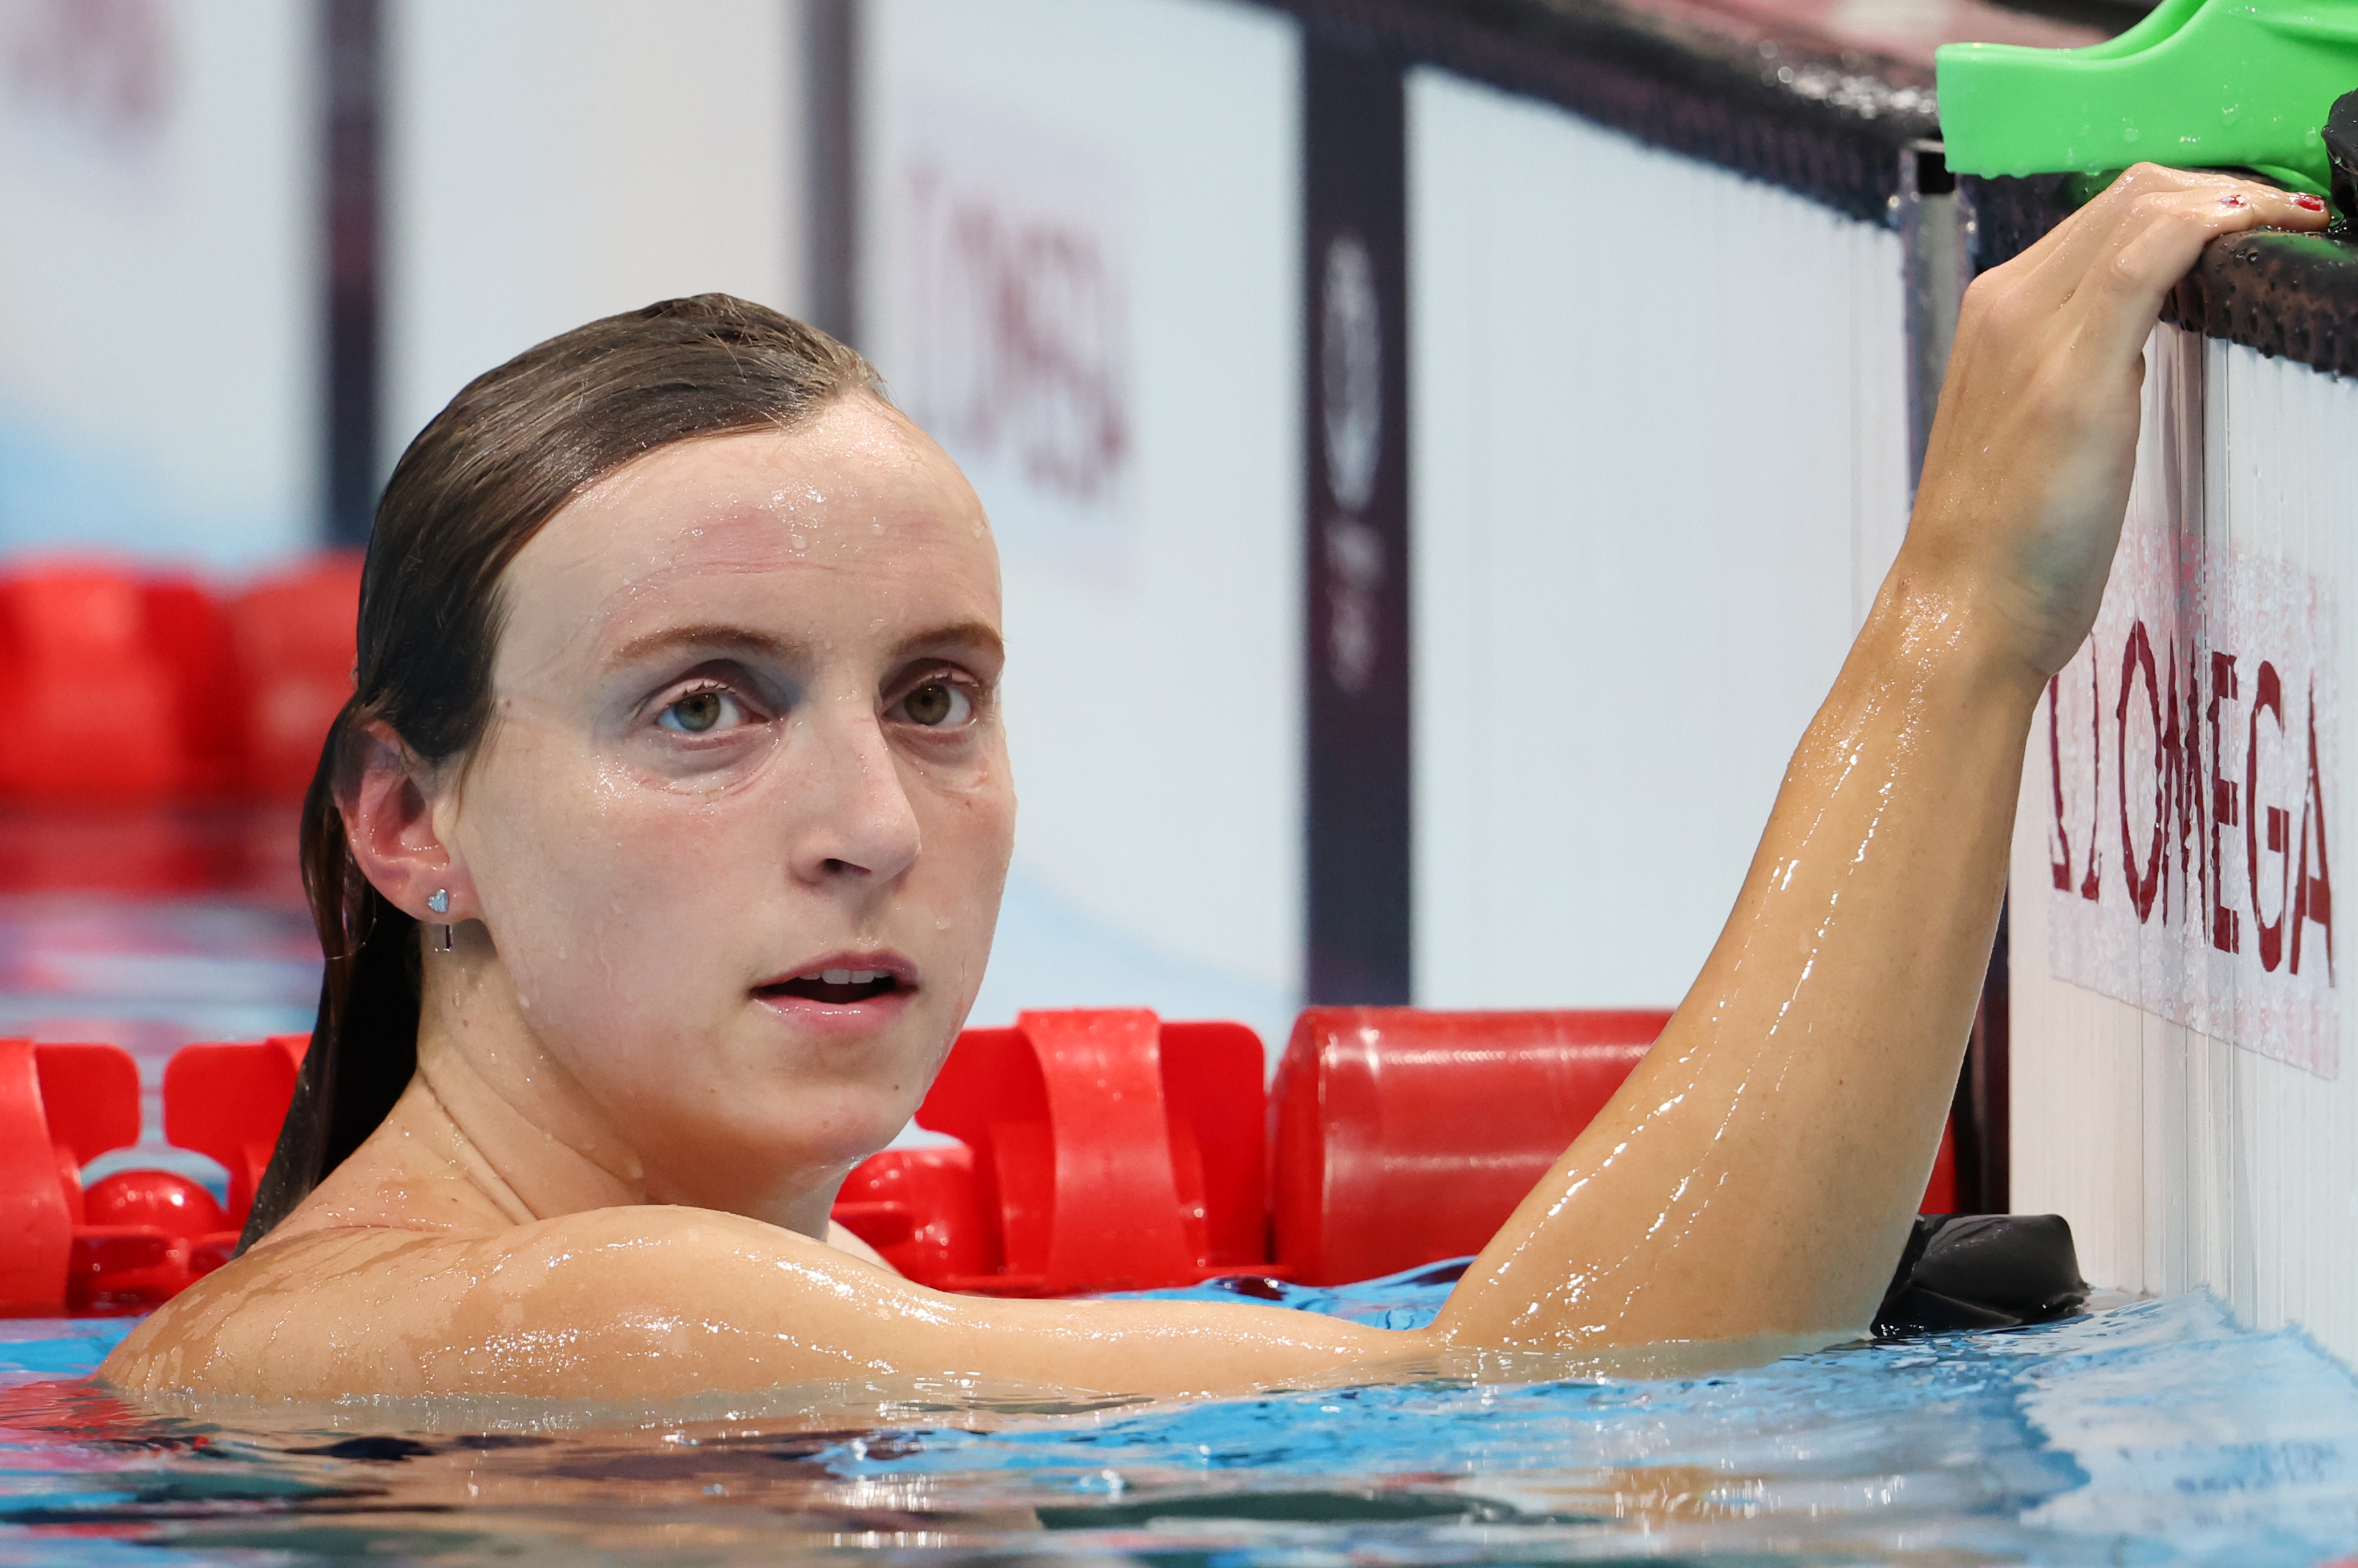 Katie Ledecky of Team United States warms up on day three of the Tokyo 2020 Olympic Games at Tokyo Aquatics Centre on July 26, 2021 in Tokyo, Japan.